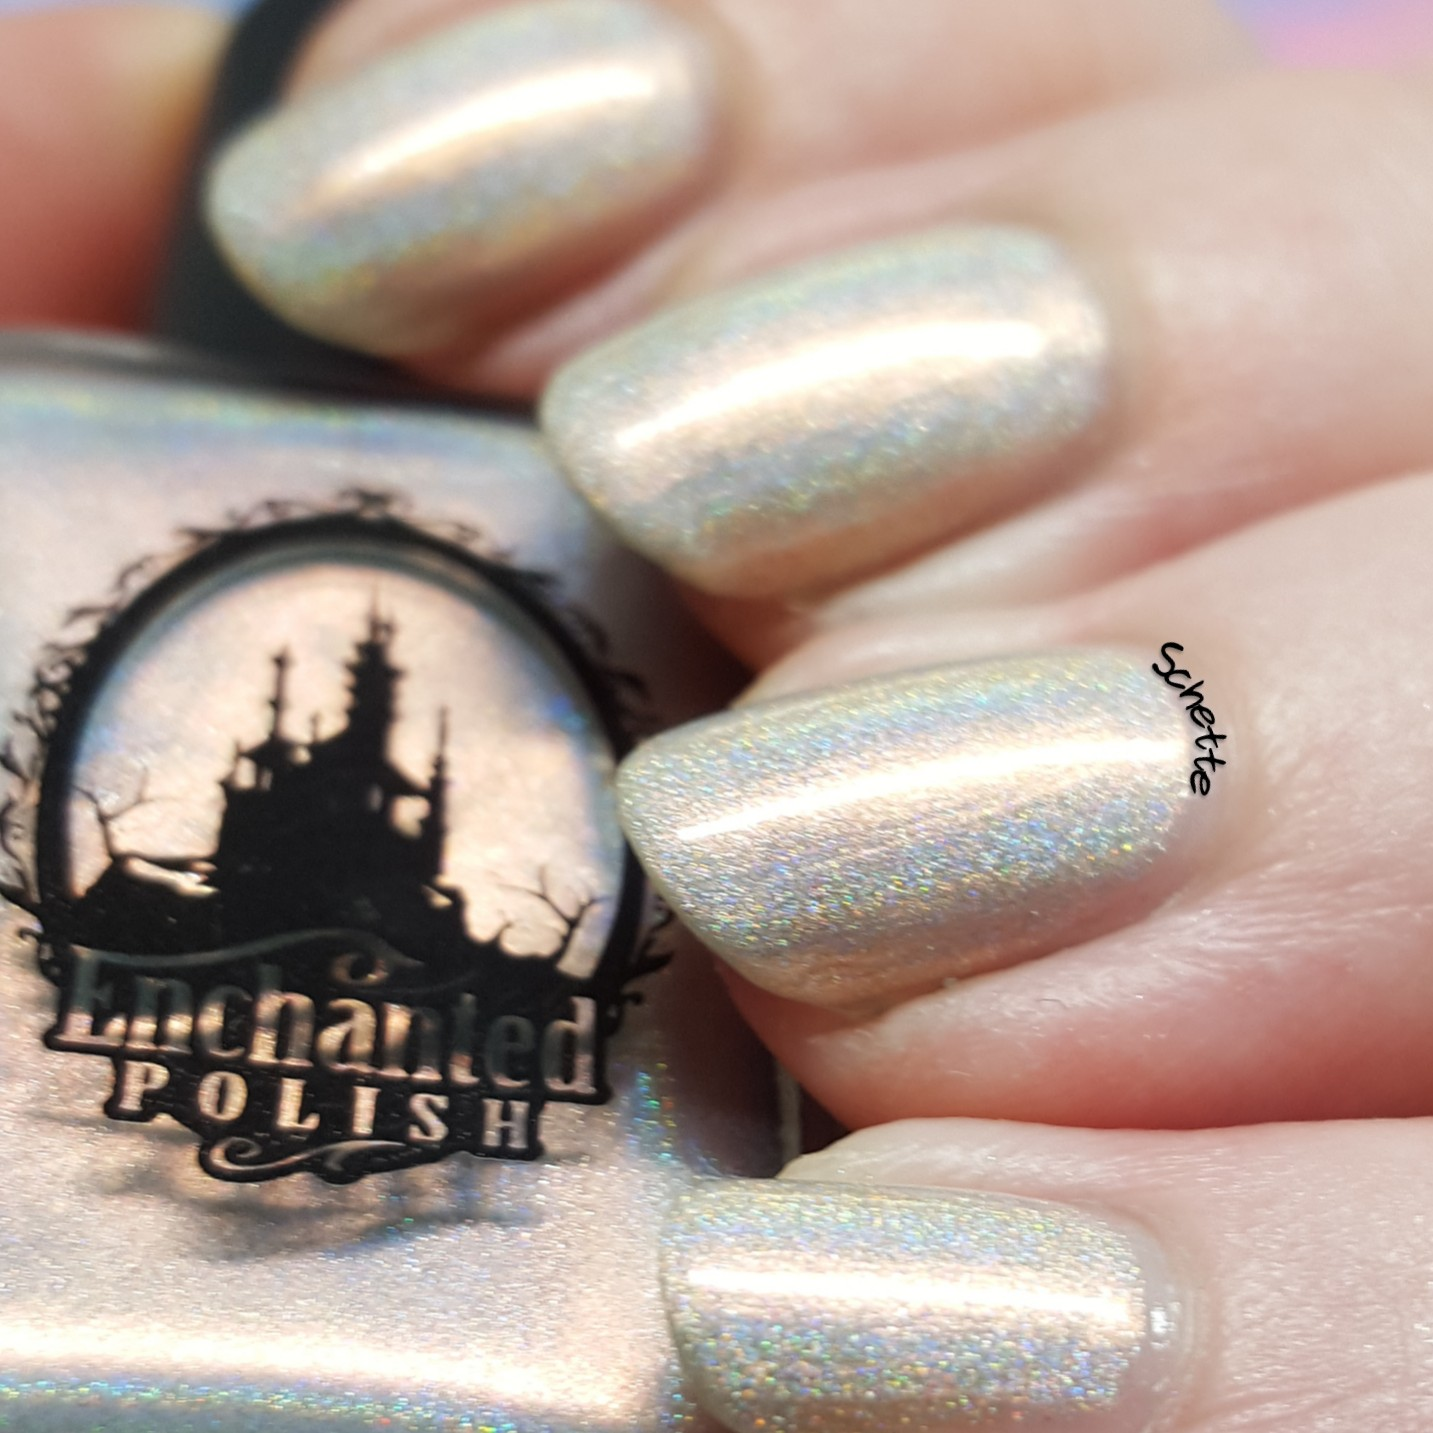 Enchanted Polish - April 2018